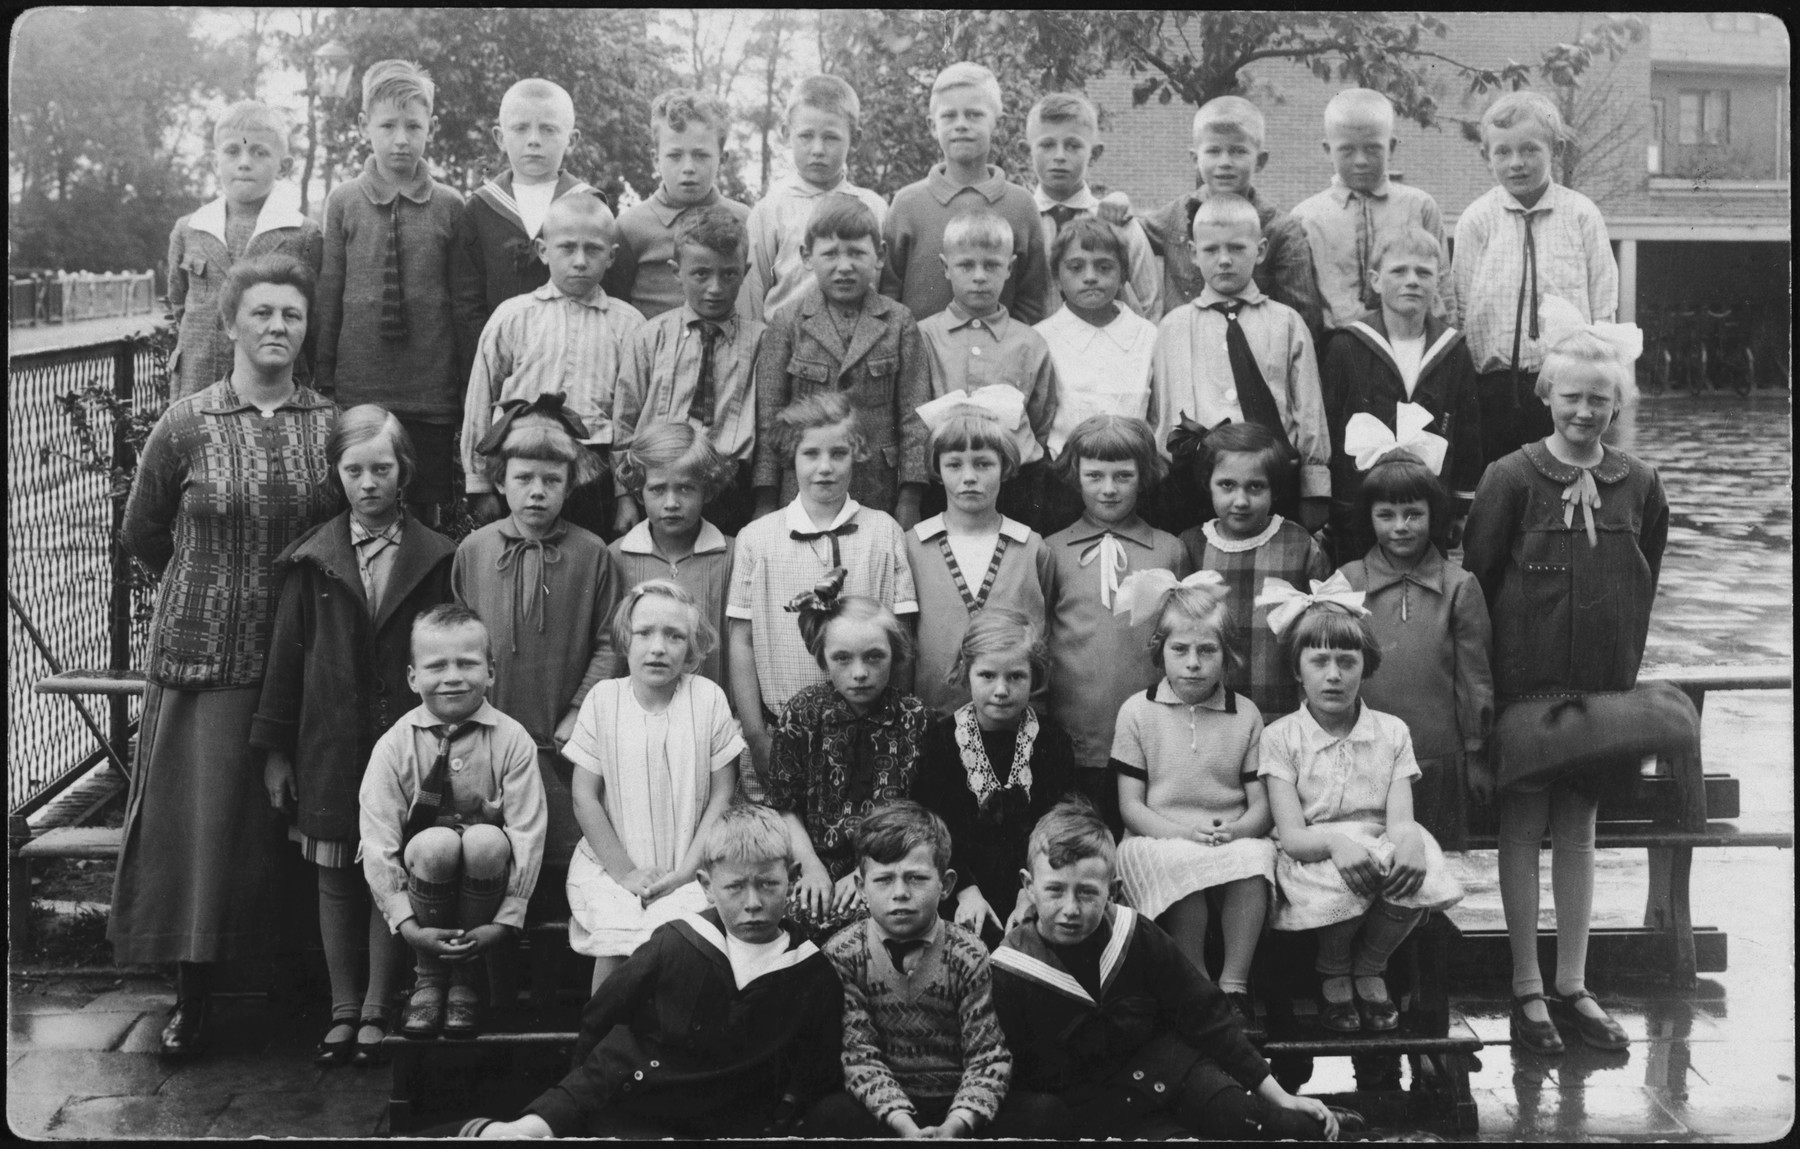 Class portrait of a Dutch elementary school.  Among those pictured is David Van Gelder (second row from the top, second from the left).